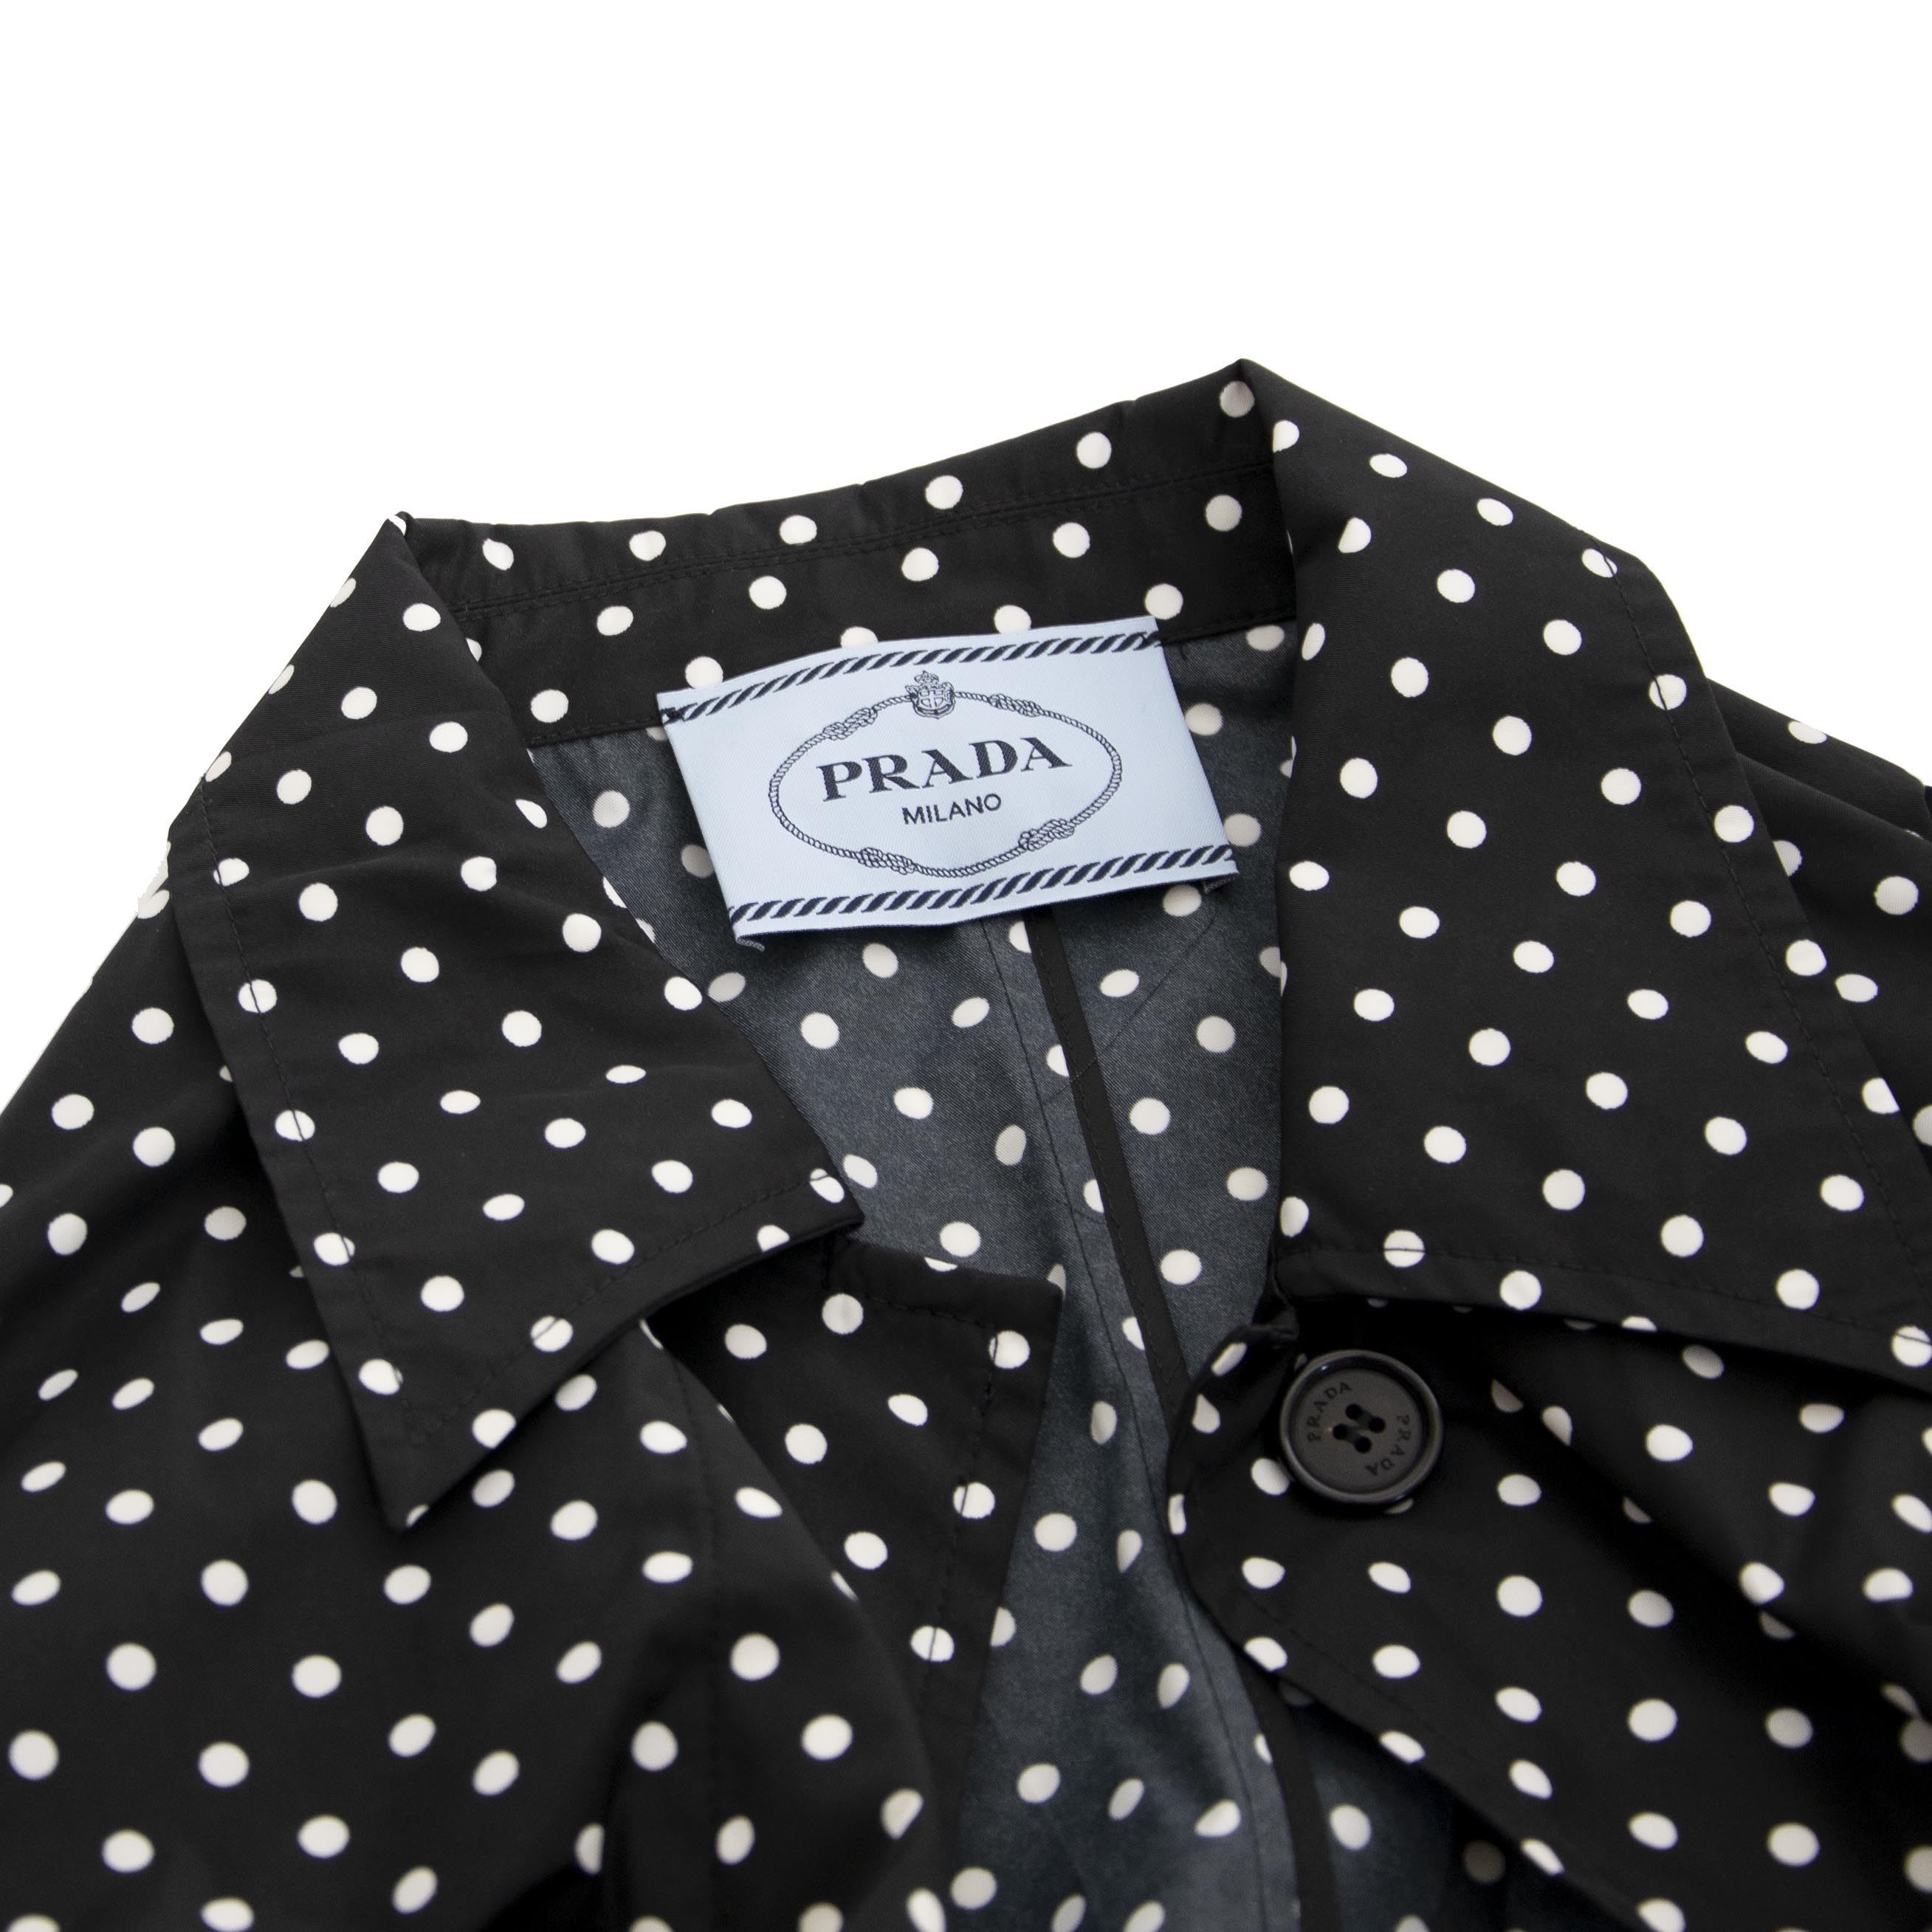 We buy and sell your authentic Prada Polka Dot Jacket